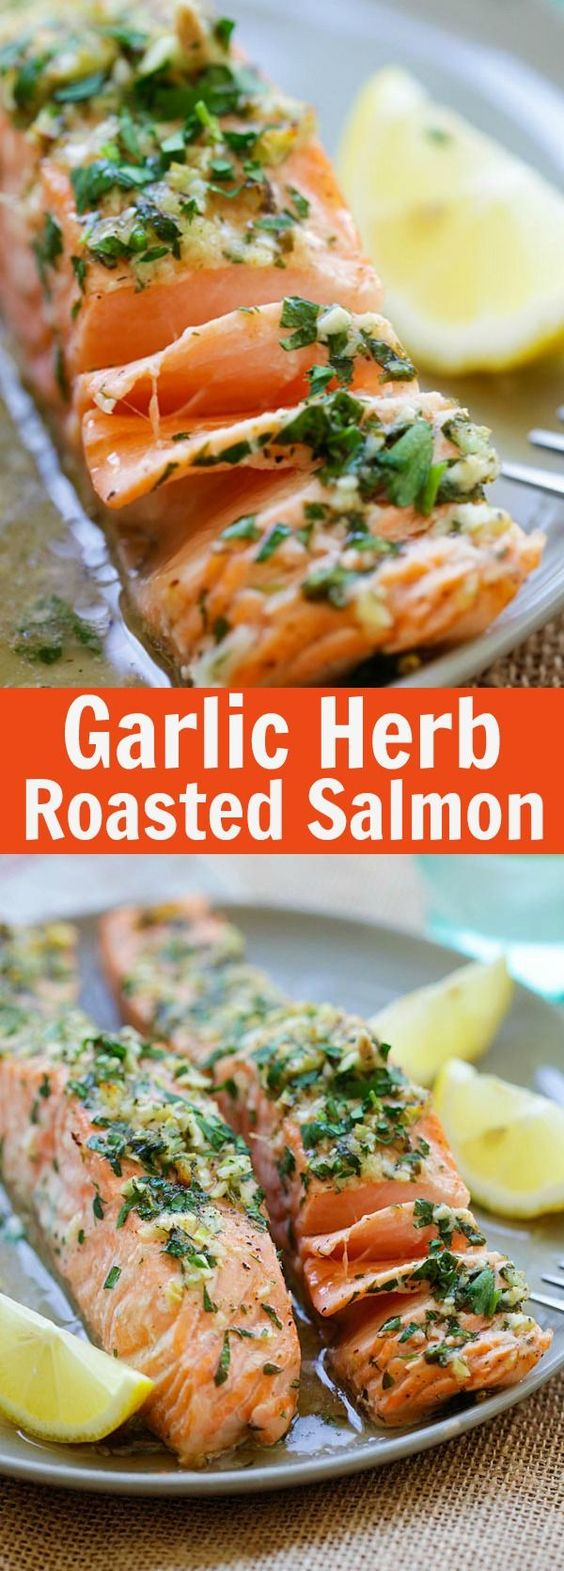 Easy Garlic Herb Roasted Salmon Recipe